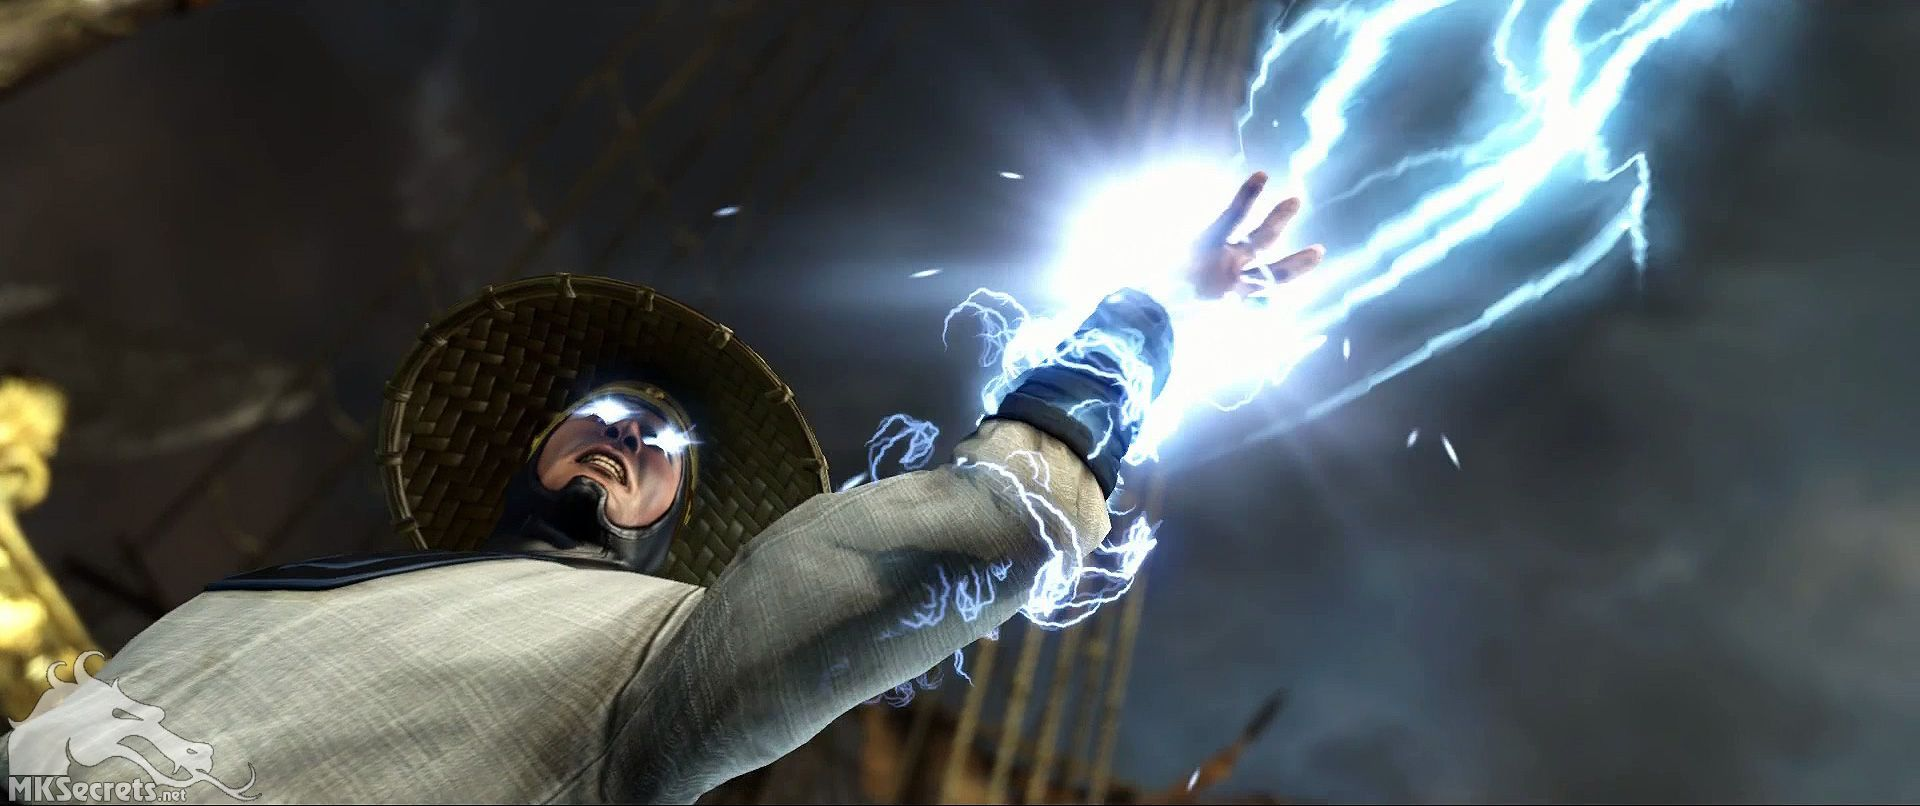 Mortal Kombat Raiden Wallpapers - Top Free Mortal Kombat